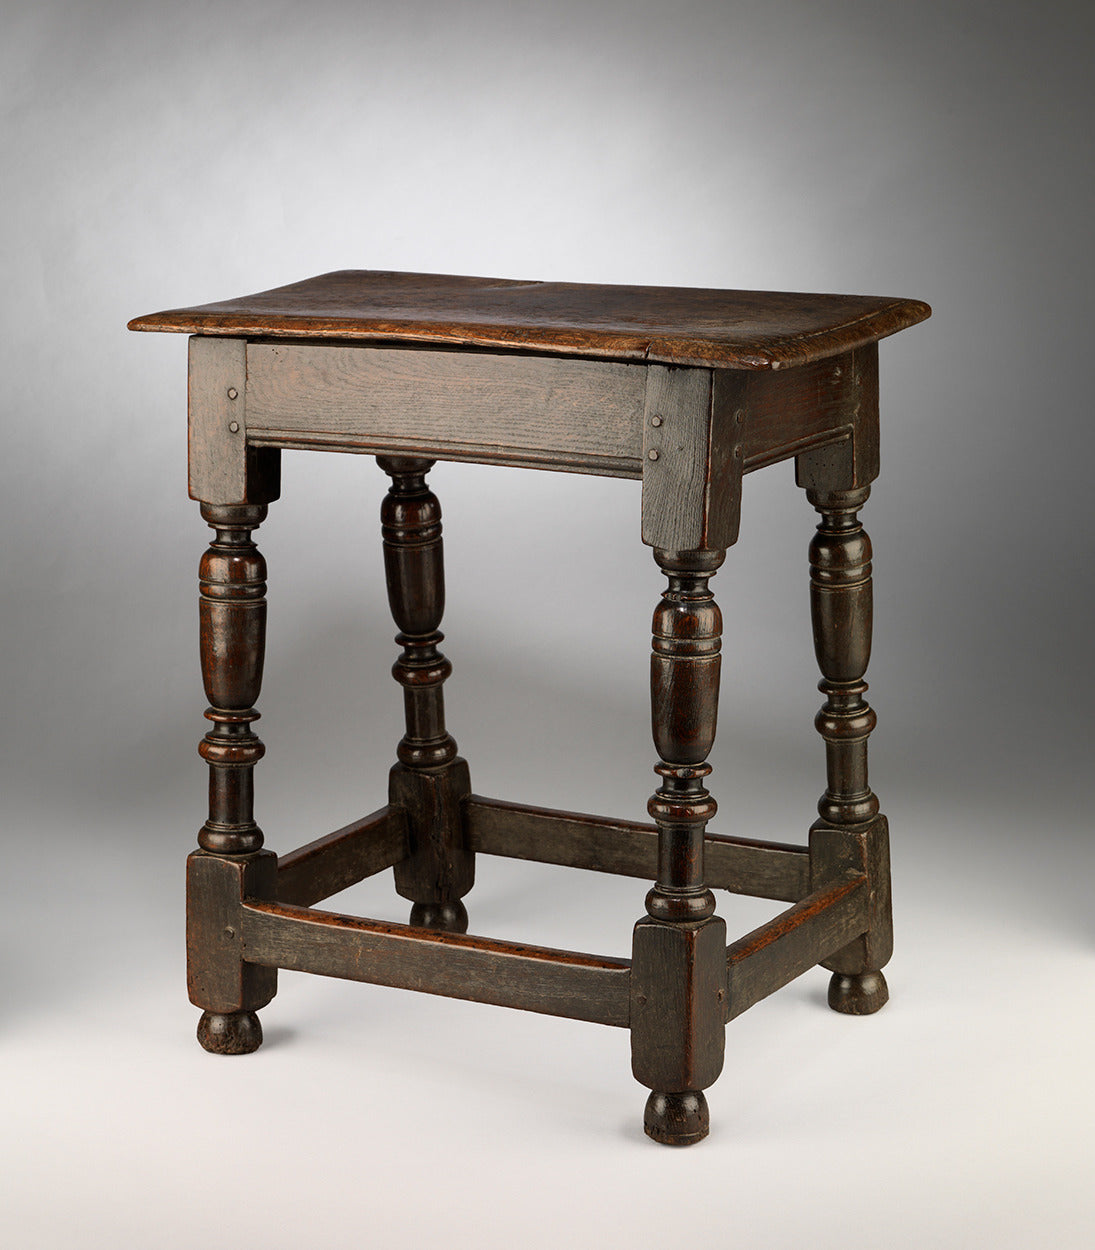 Classic William and Mary Period Joint Stool